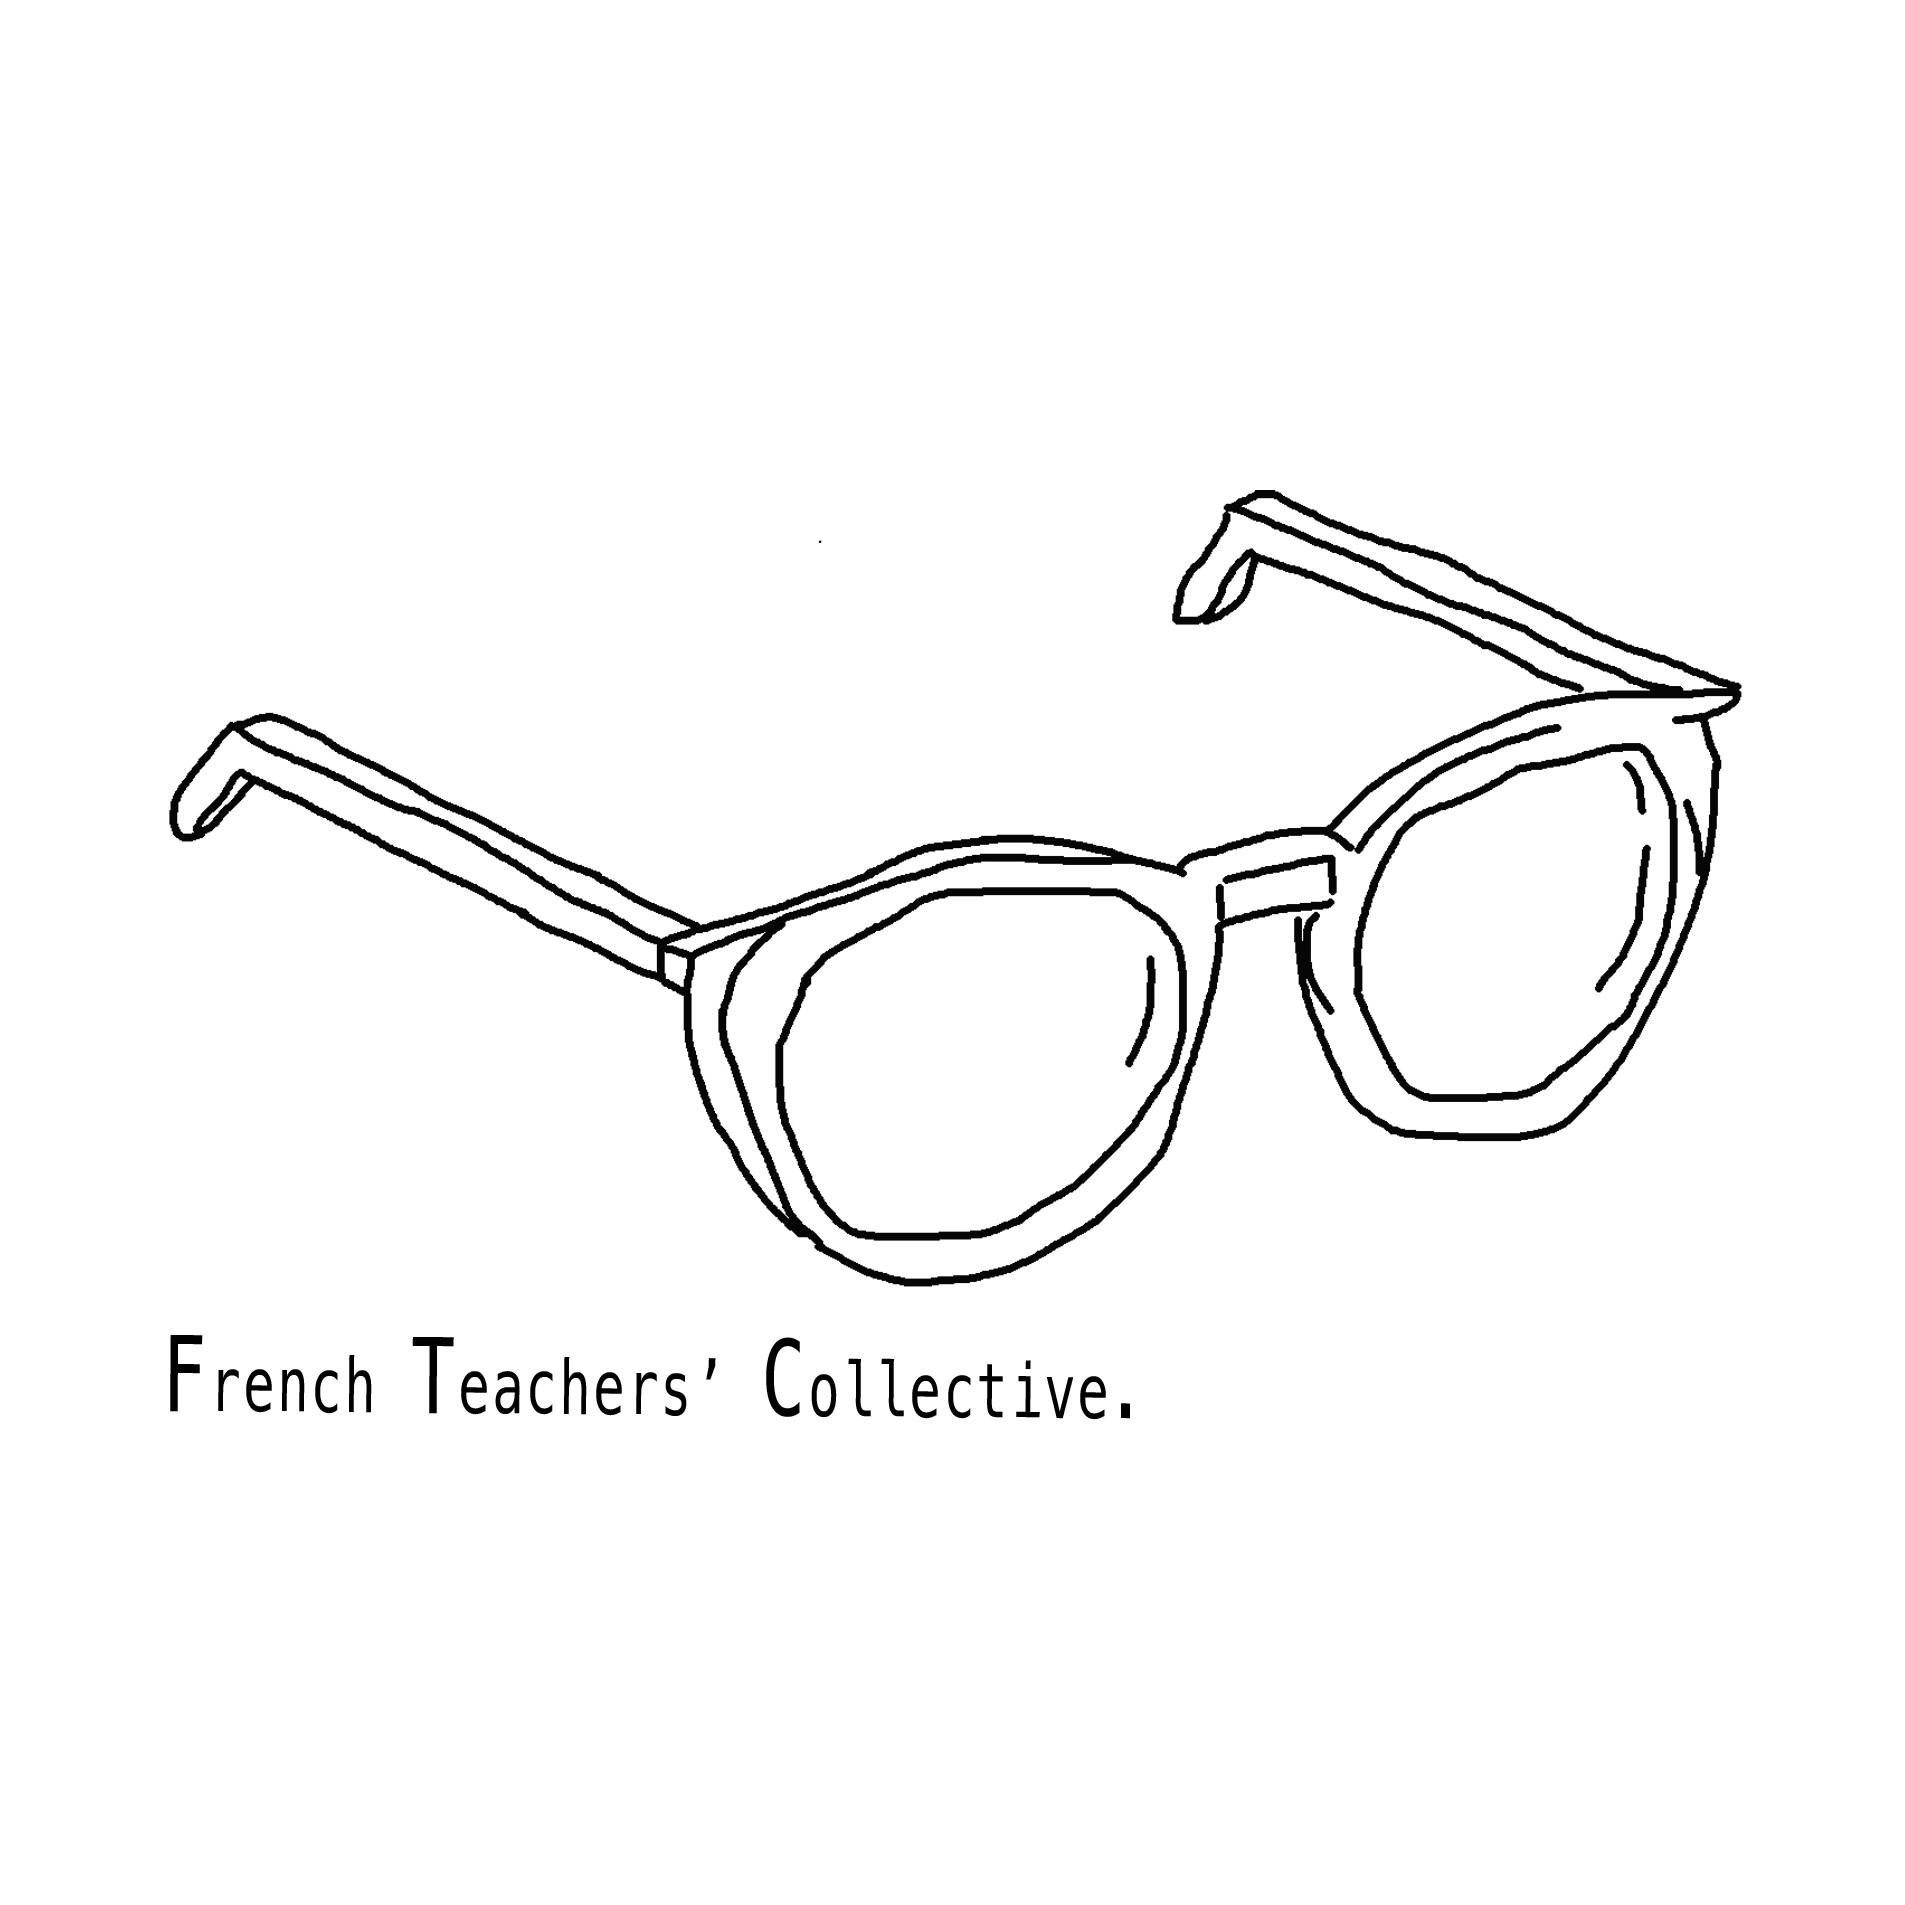 French Teachers' Collective